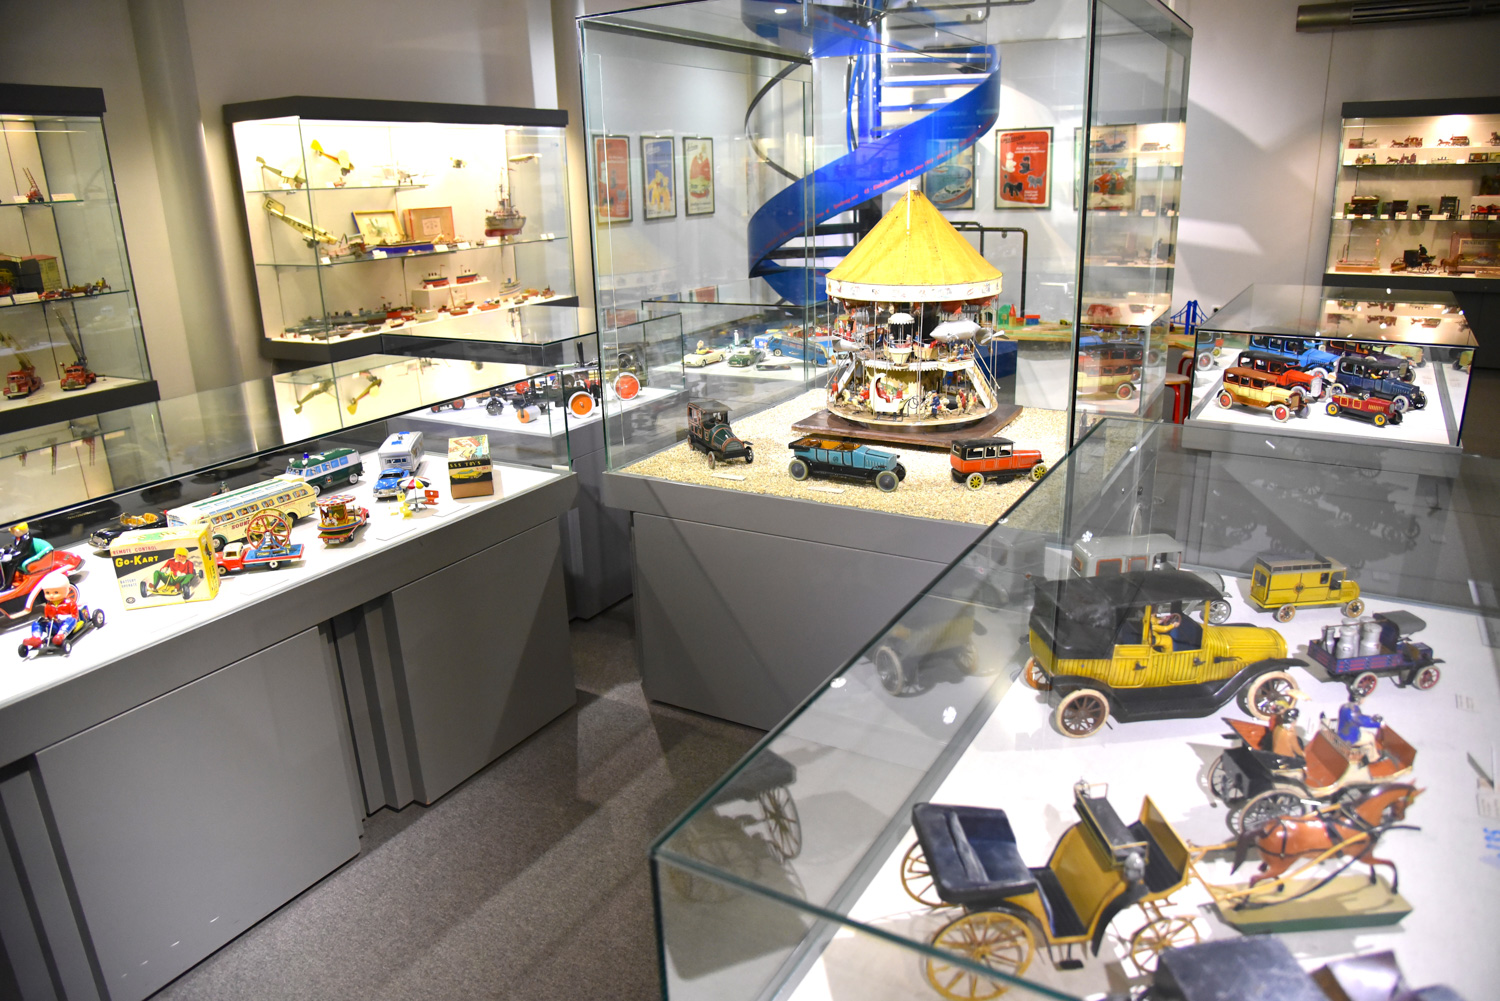 The museum opened in 1971 and is built around a private collection of some 12,000 toys owned by the late Lydia and Paul Bayer.